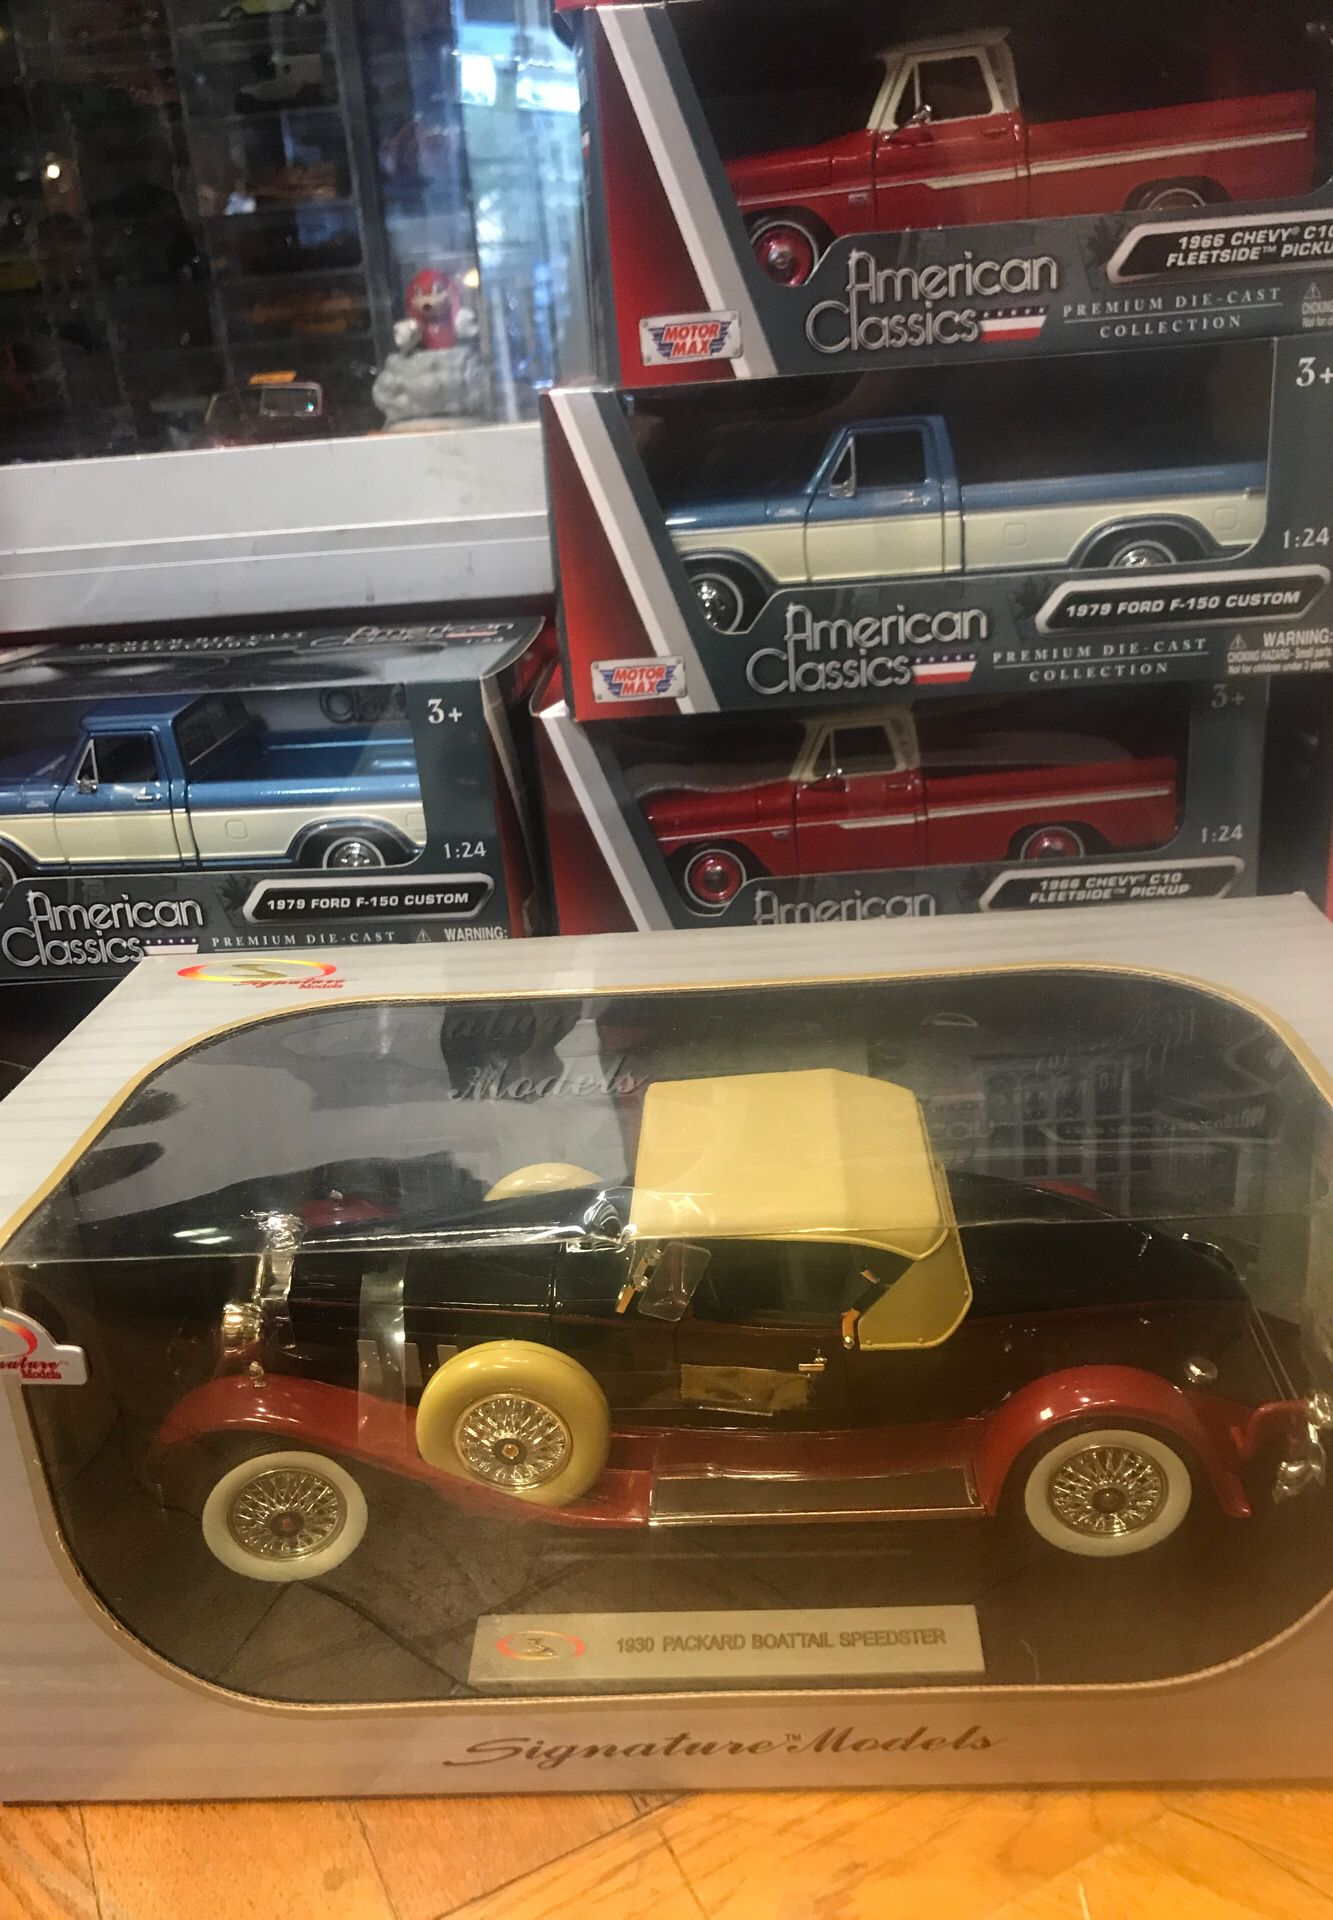 1930 Packard Boattail speedster convertible 1:18 scale diecast collectible